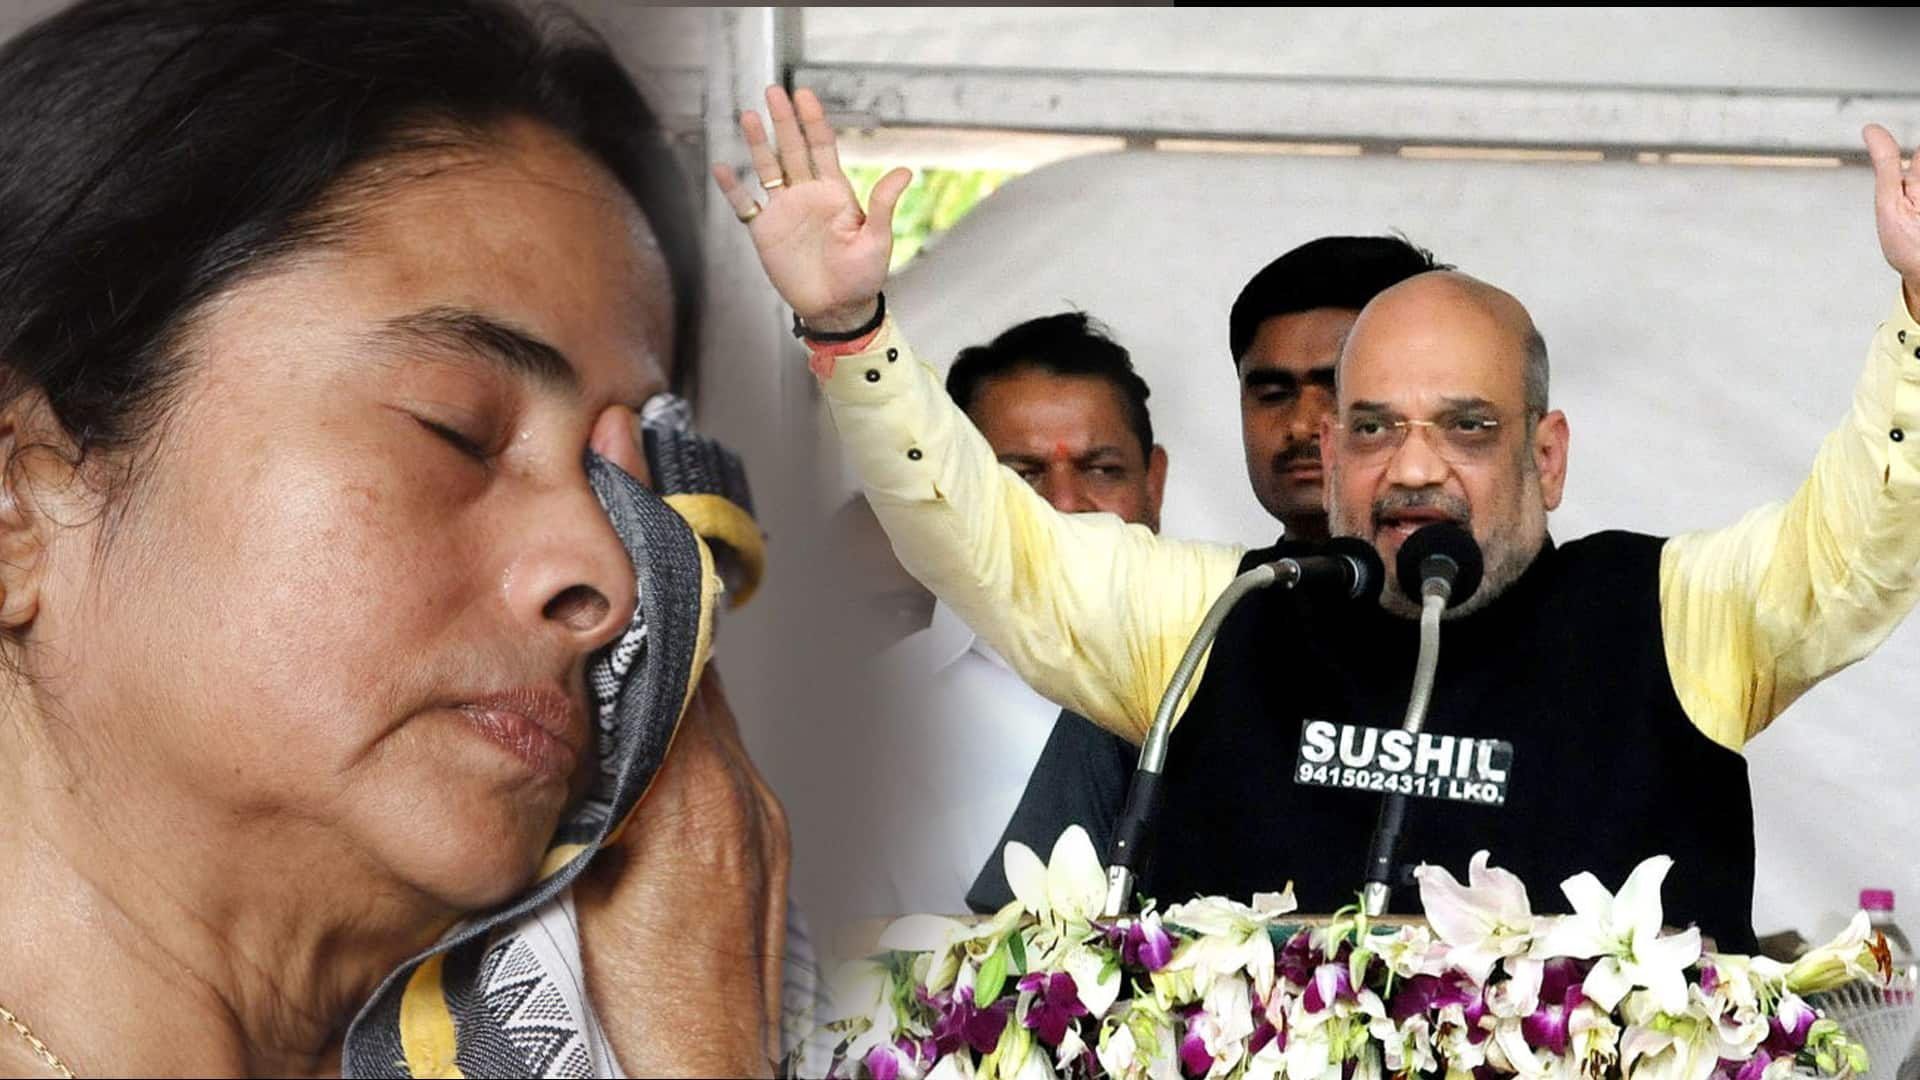 15,000 TMC, Congress and RSP workers to join BJP after Mamata Banerjee commemorates 'Shahid Dibas' in Bengal